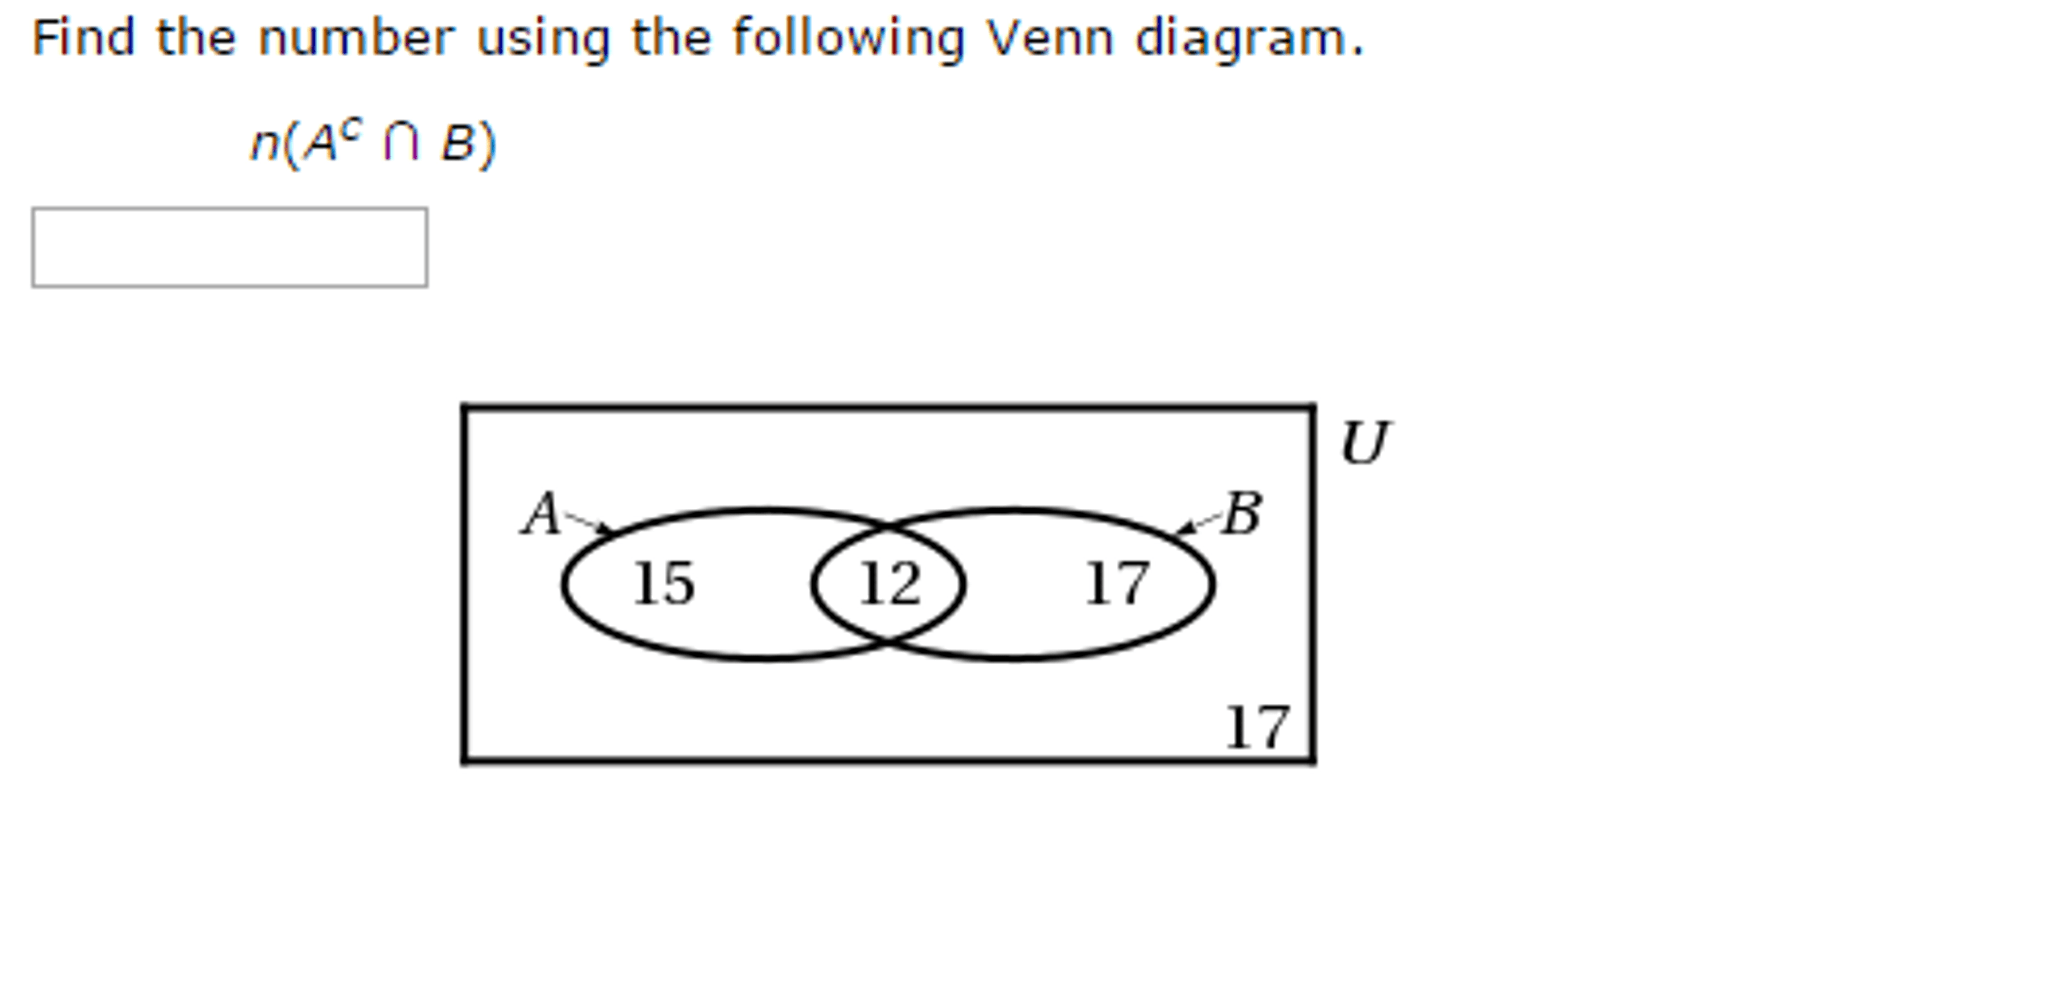 how to find the intersection in a venn diagram hotpoint electric stove wiring solved number using following